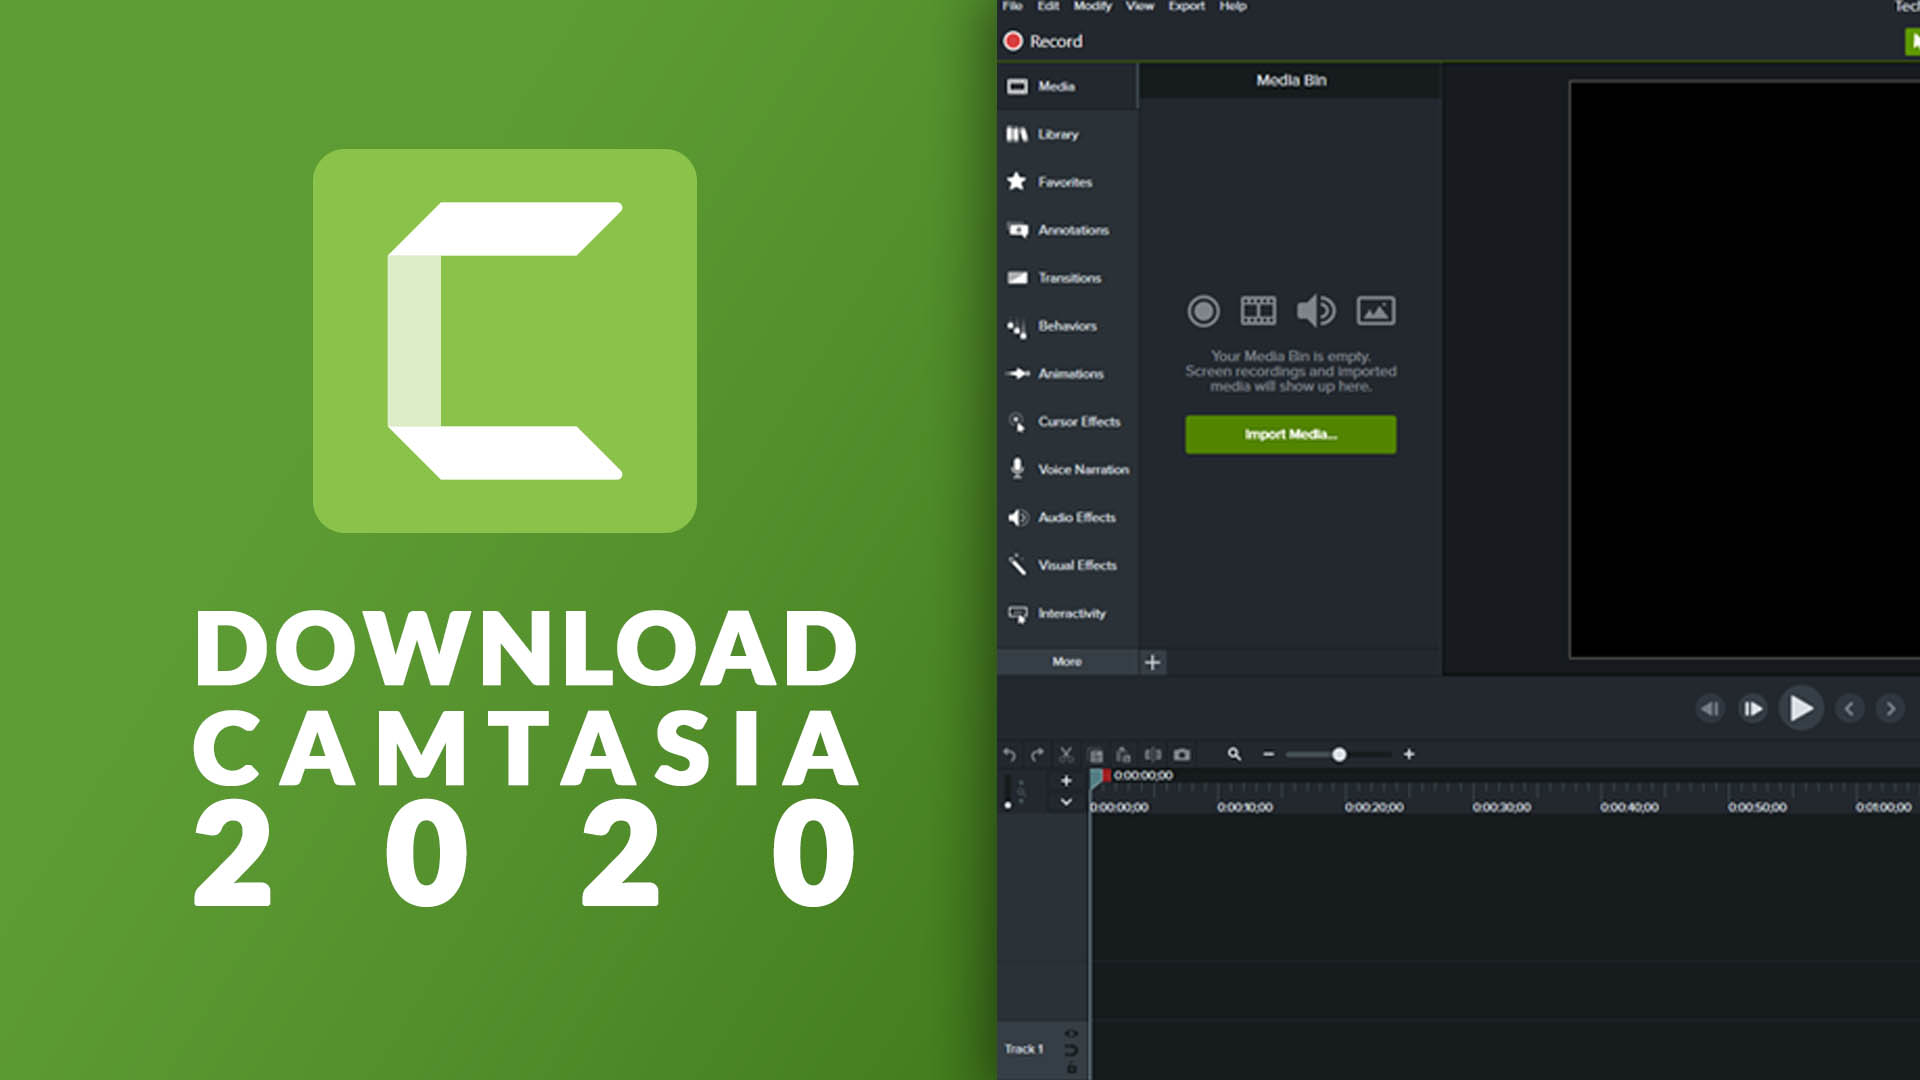 Download Camtasia 2020